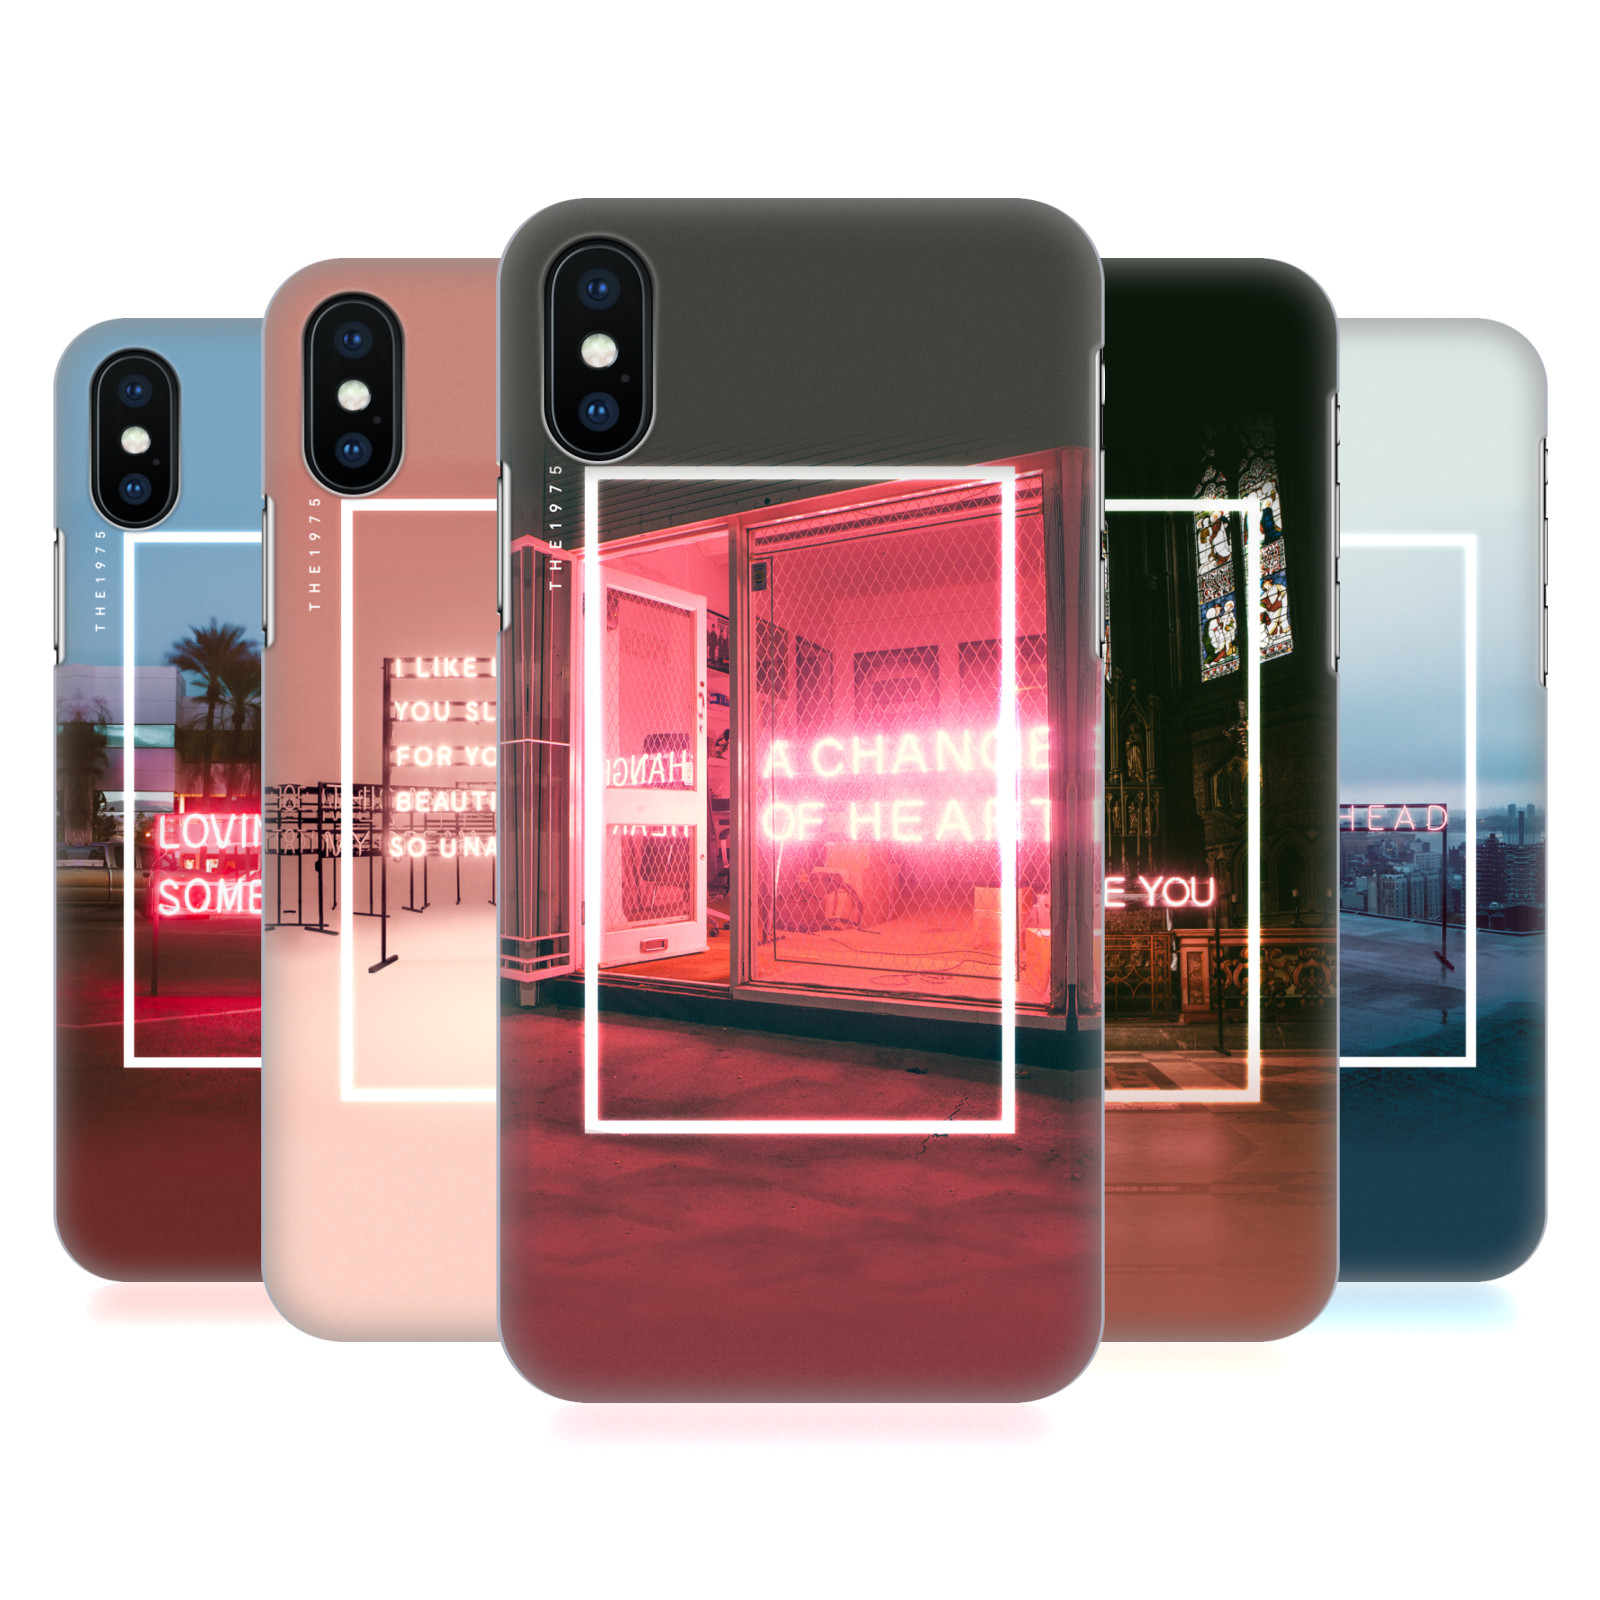 The 1975 2 iphone case